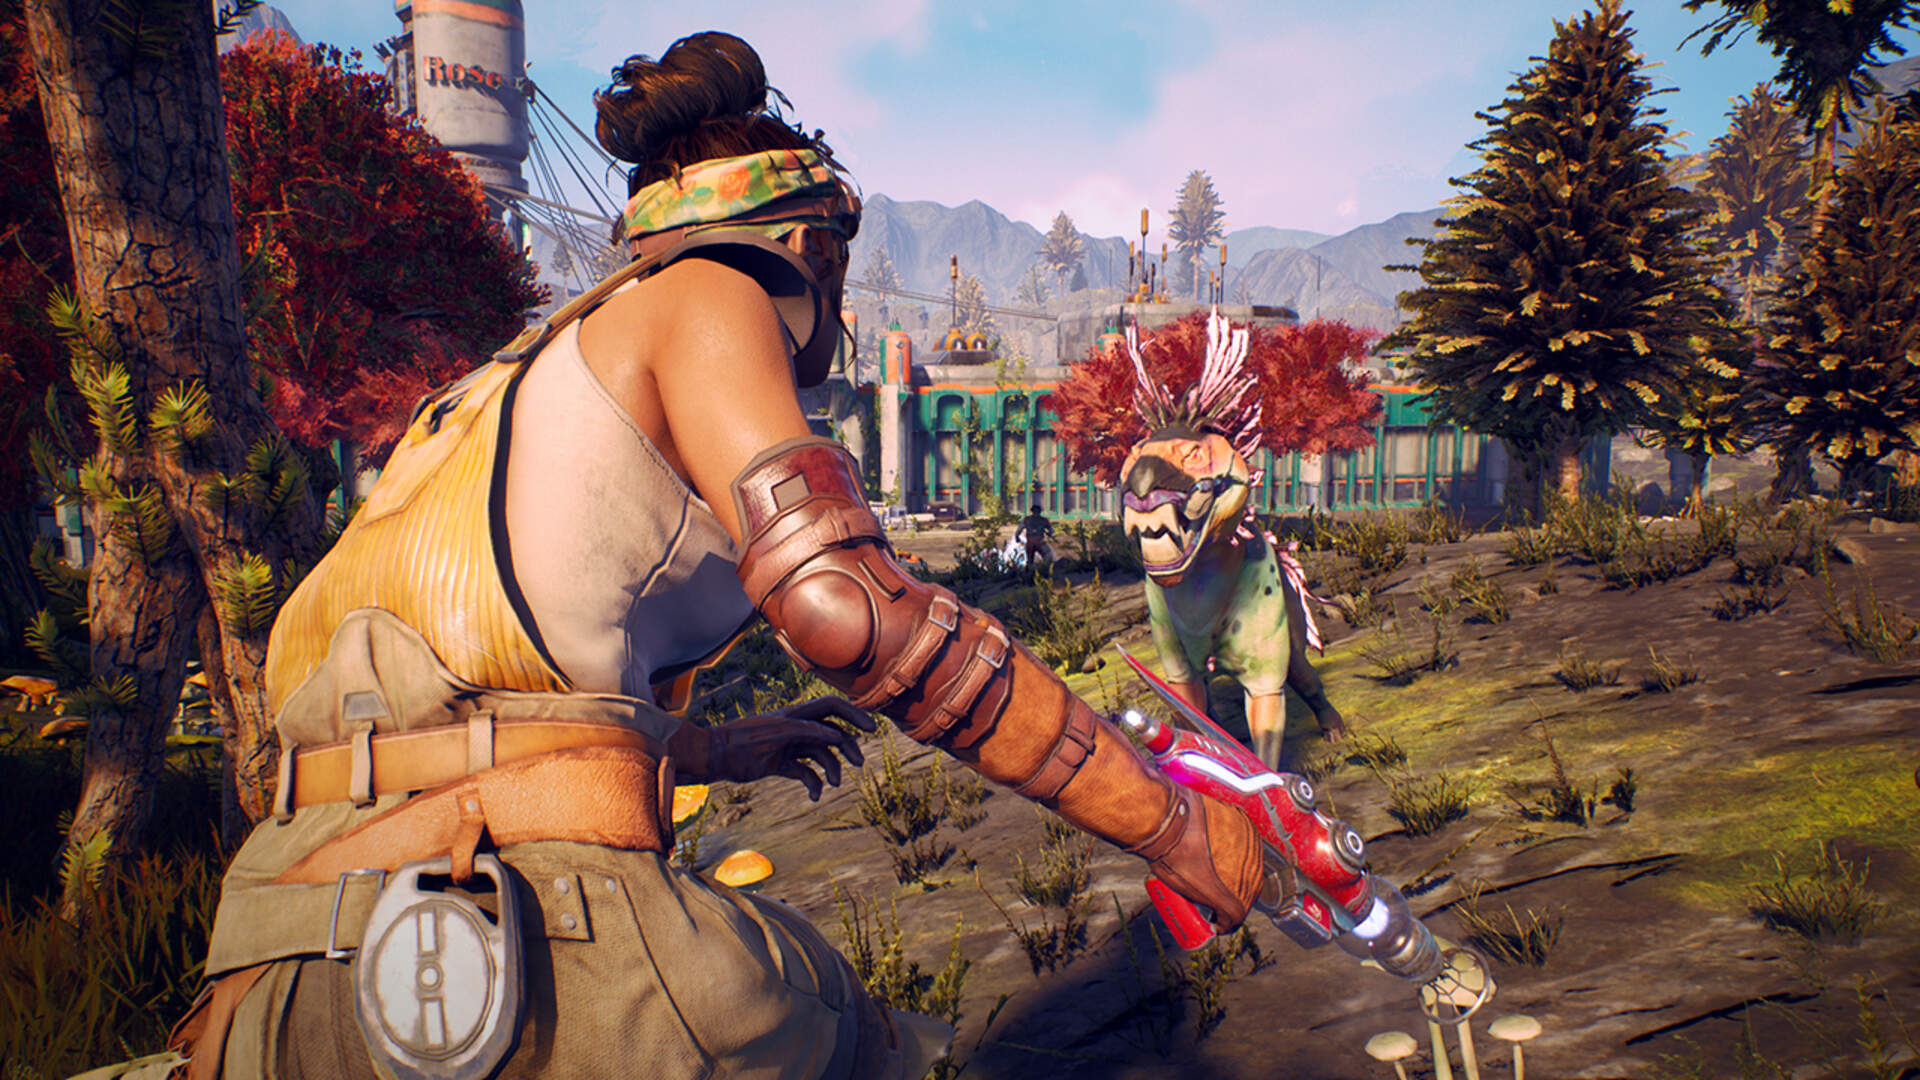 The Outer Worlds Respec - How to Respec Your Character Skills